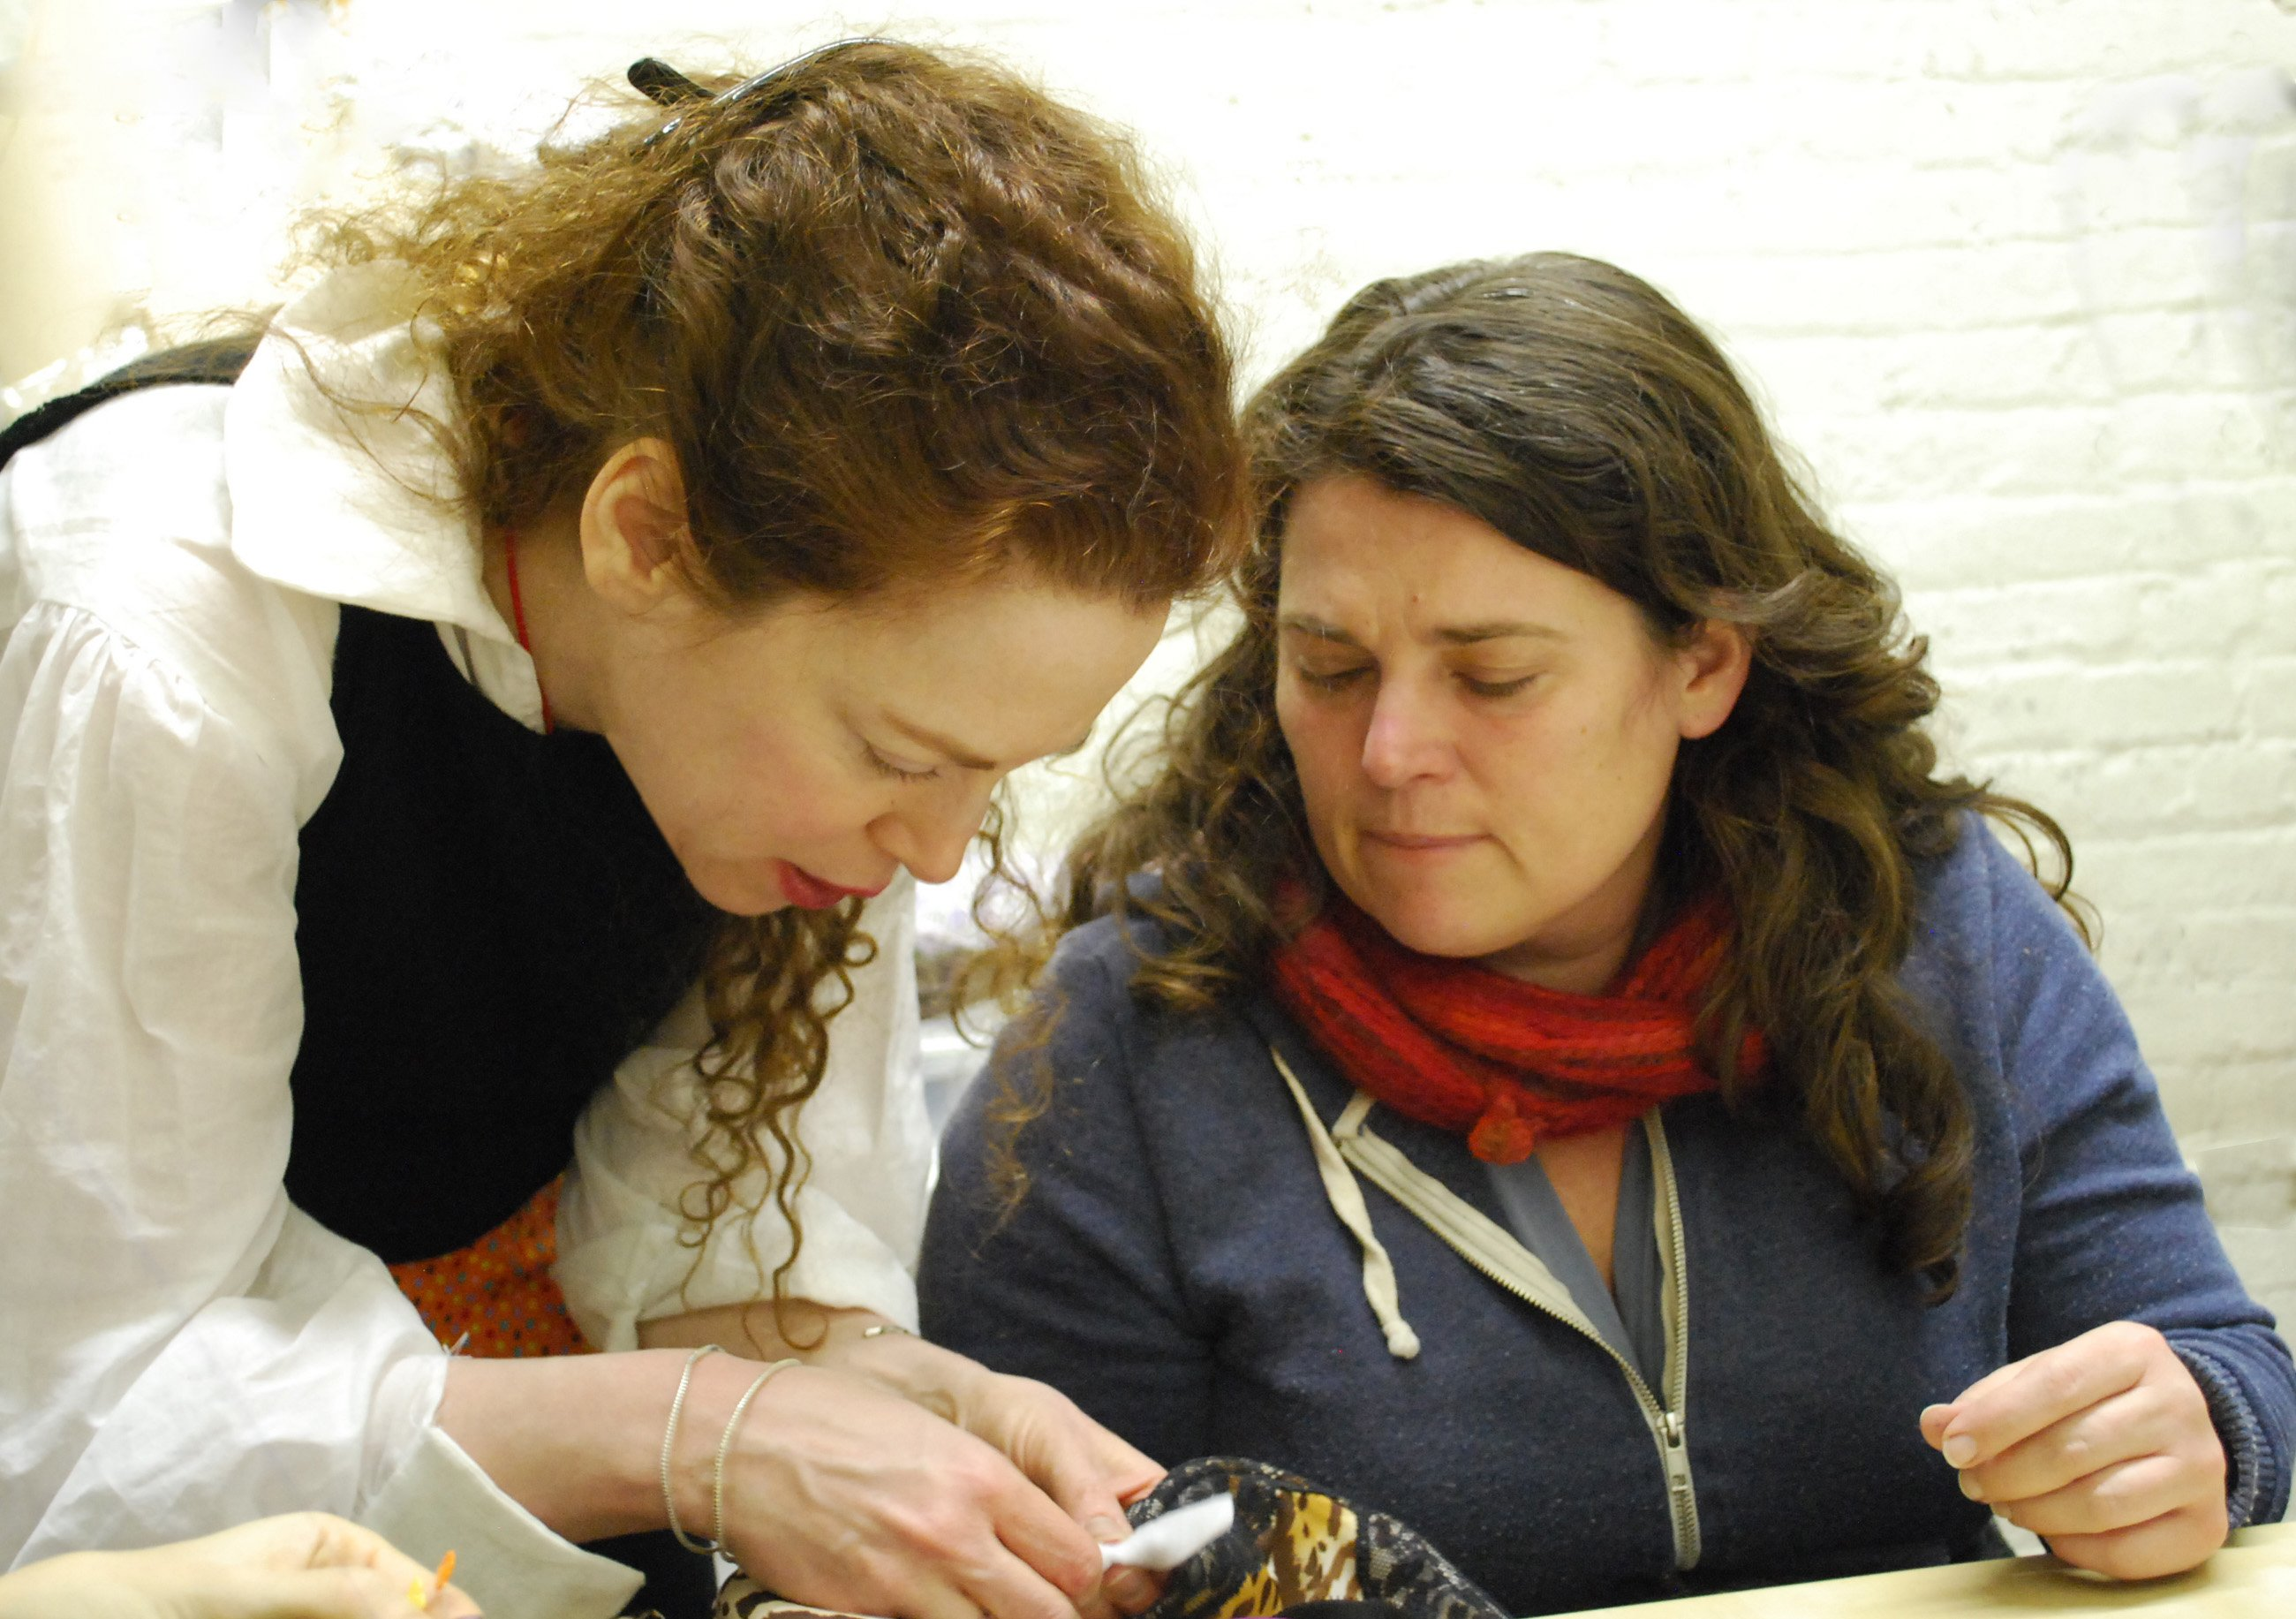 Sarah Kate Beaumont teaching mending to a student